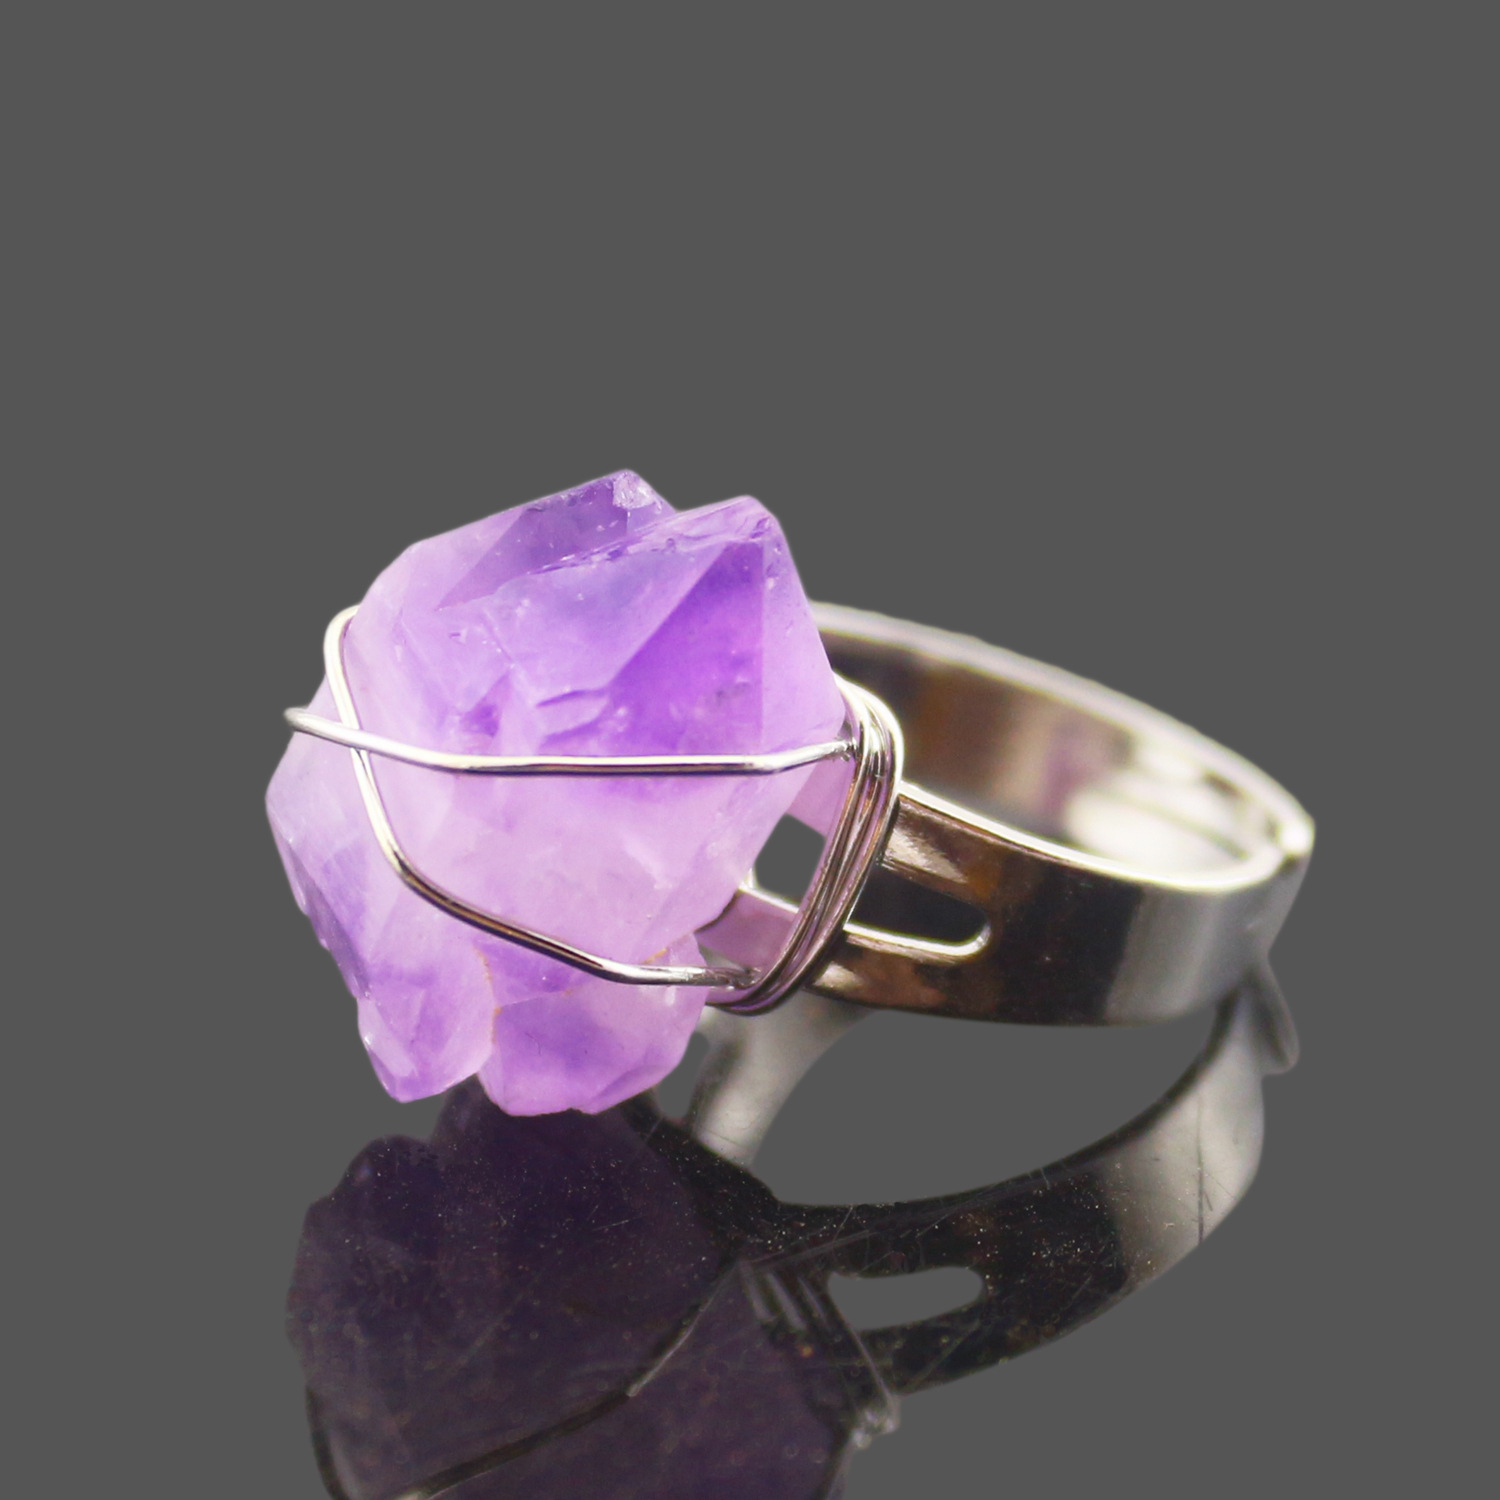 <font><b>Raw</b></font> Natural Cluster Stone <font><b>Ring</b></font> Wire Wrapped Adjustable <font><b>Ring</b></font> for Women Men Amethysts Quartz <font><b>Crystal</b></font> Vintage Finger <font><b>Rings</b></font> Jewelry image